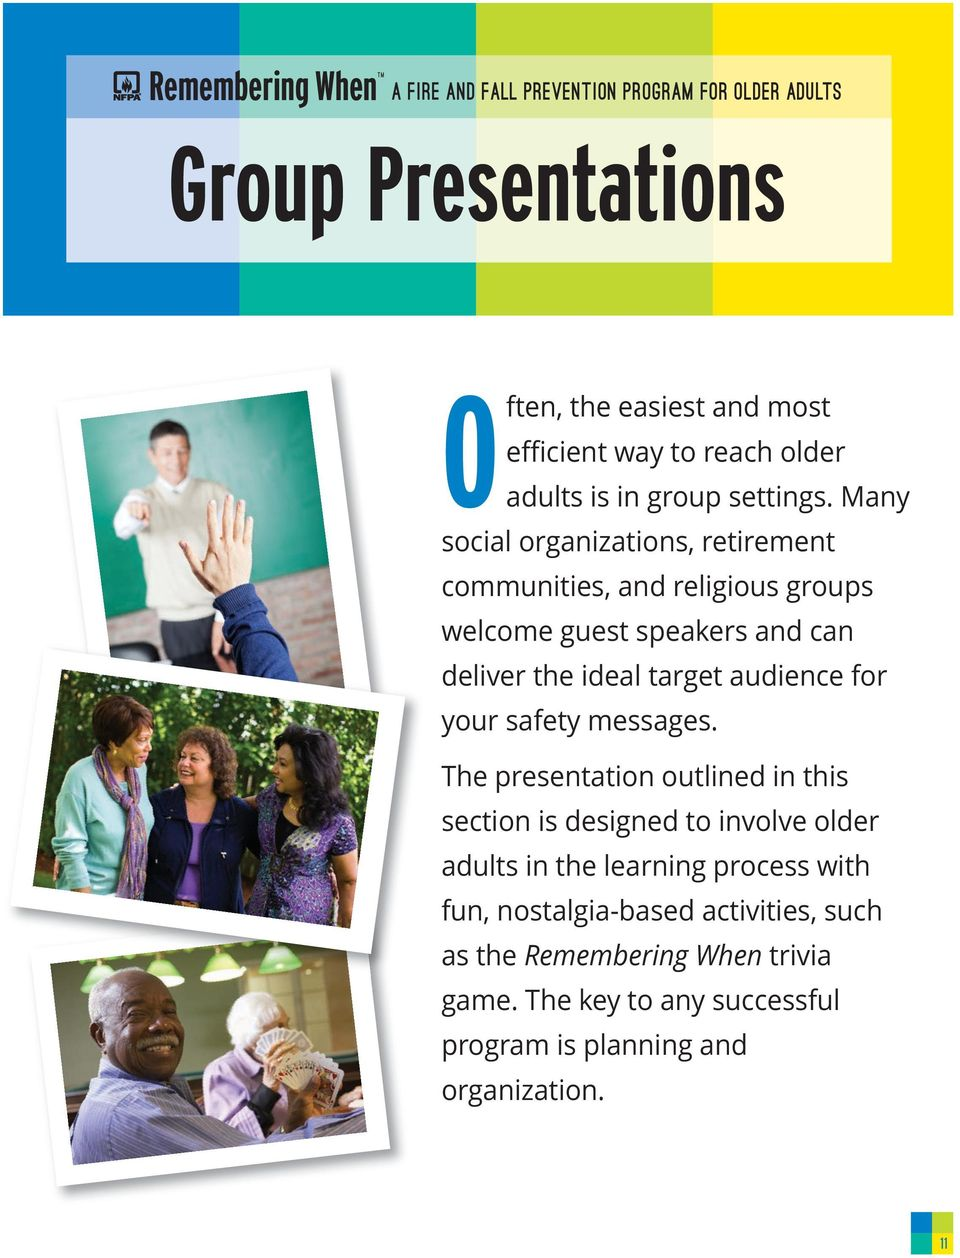 Many social organizations, retirement communities, and religious groups welcome guest speakers and can deliver the ideal target audience for your